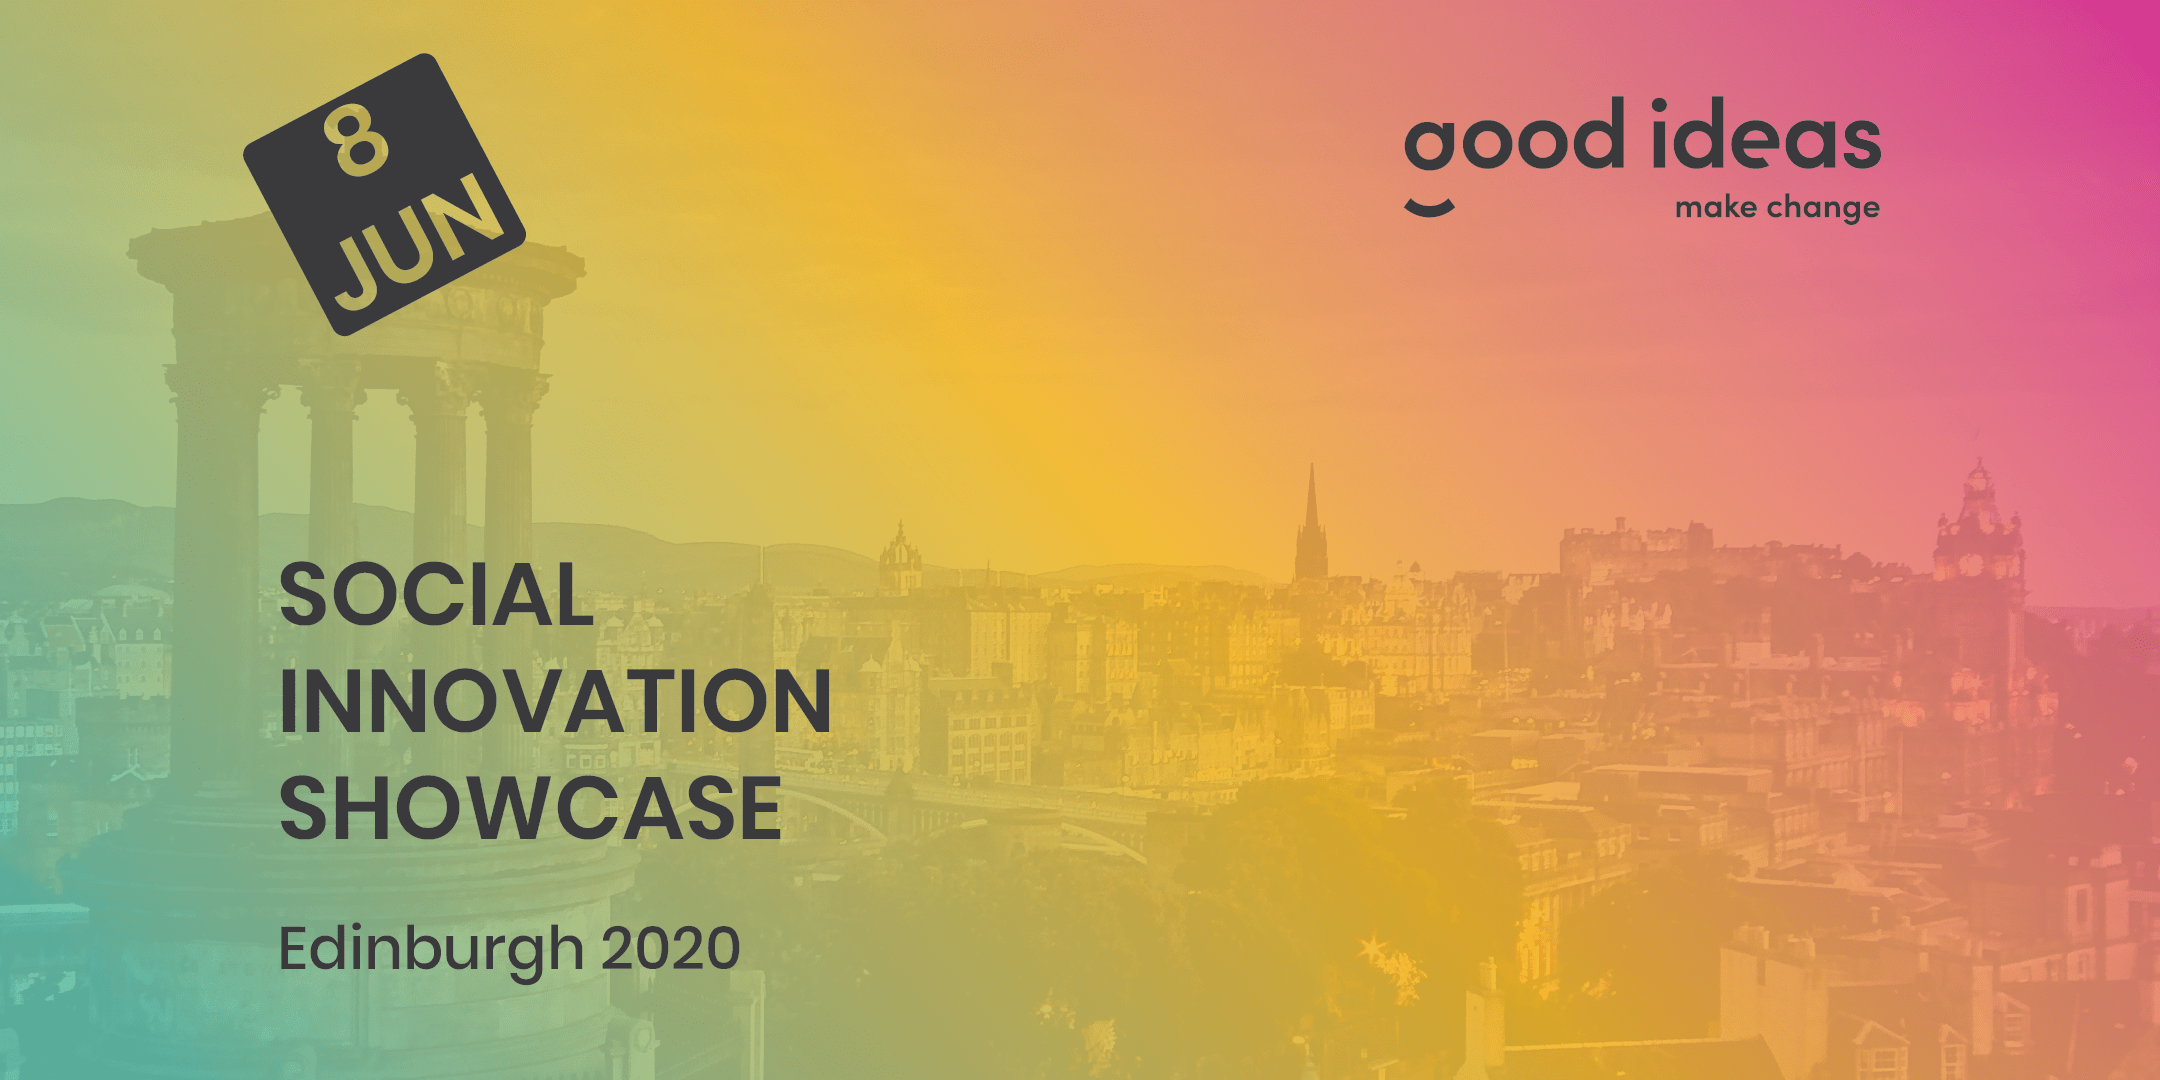 Social Innovation Showcase | Edinburgh 2020 8 June